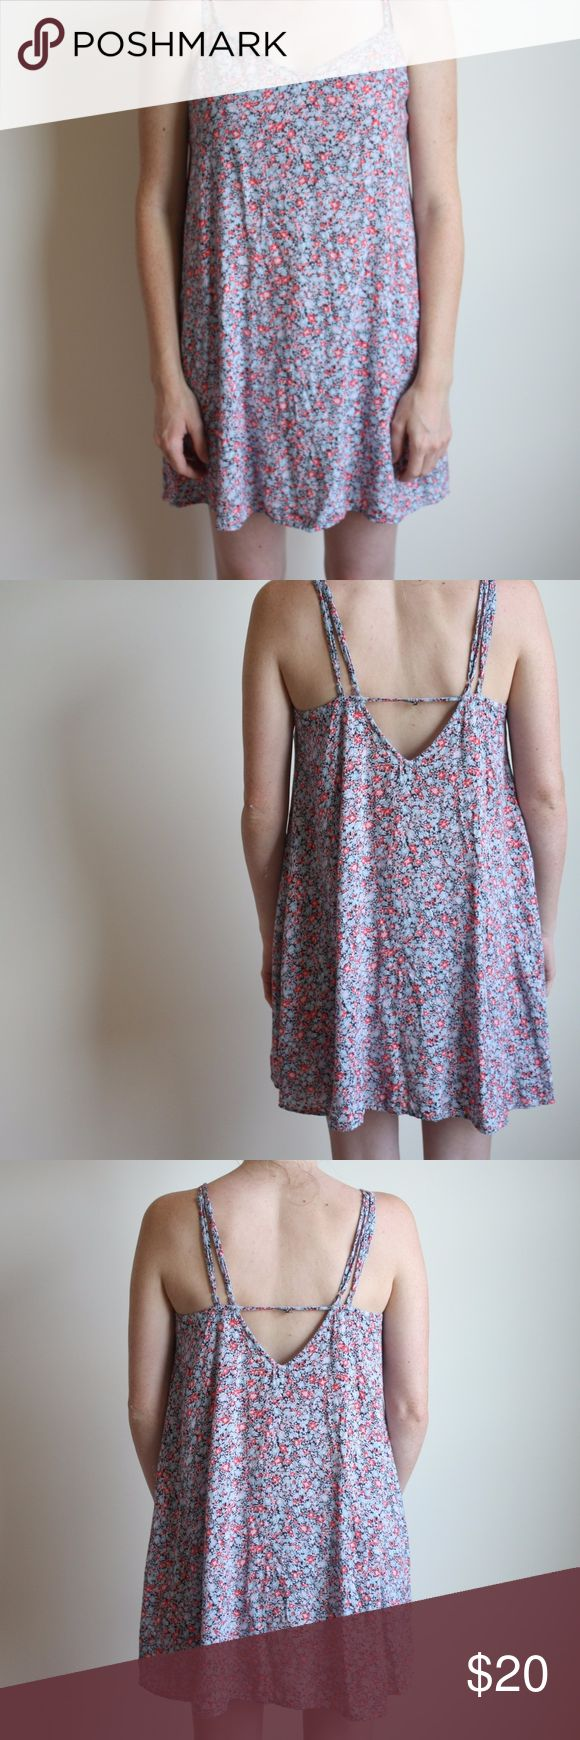 🌸24 HR FINAL CLEARANCE🌸 Floral Swing Dress Gently used. No signs of wear. This swing dress is sooo dreamy and flirty. Small wildflowers printed on the fabric make it so adorable! One small button in the back to gather the straps to ensure it wont slip off your shoulder! So breezy and lightweight. Super soft.  -Size Small but can fit a medium American Eagle Outfitters Dresses Mini